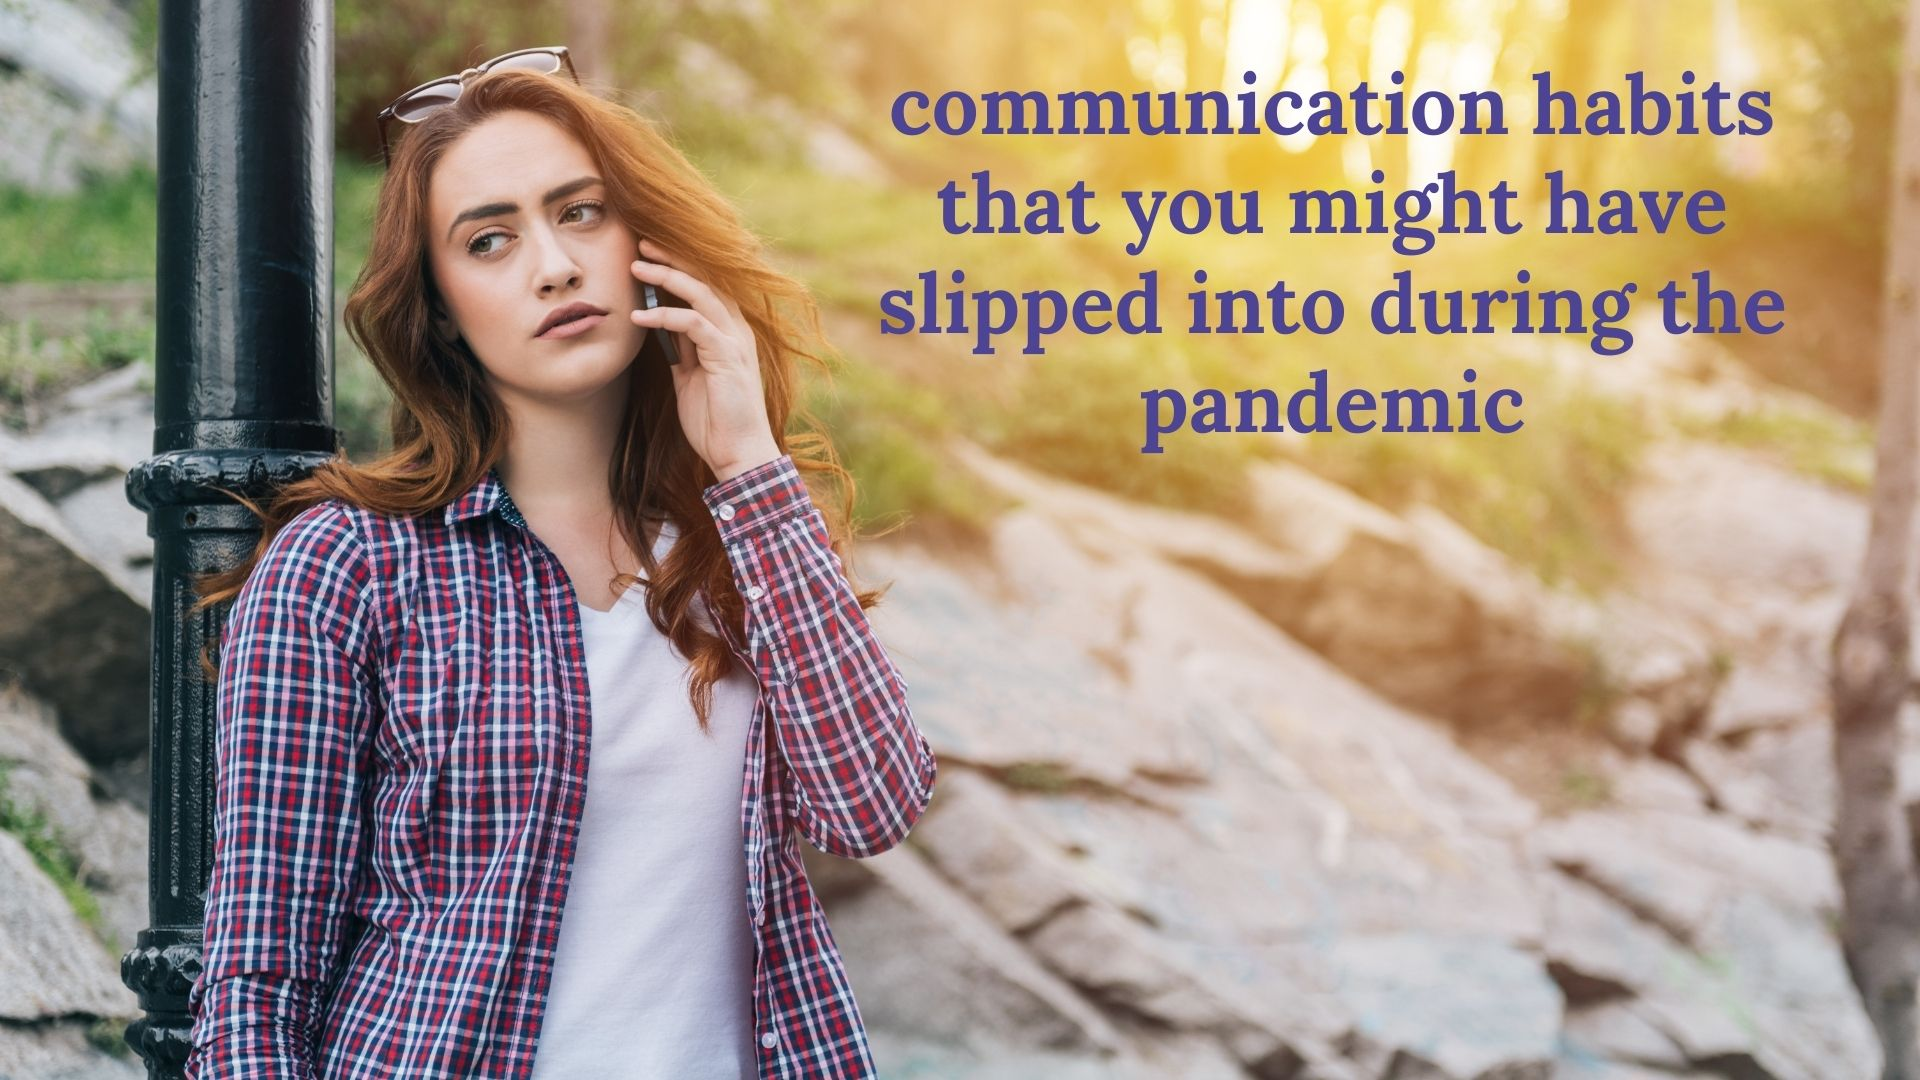 Four bad communication habits that you might have slipped into during the pandemic